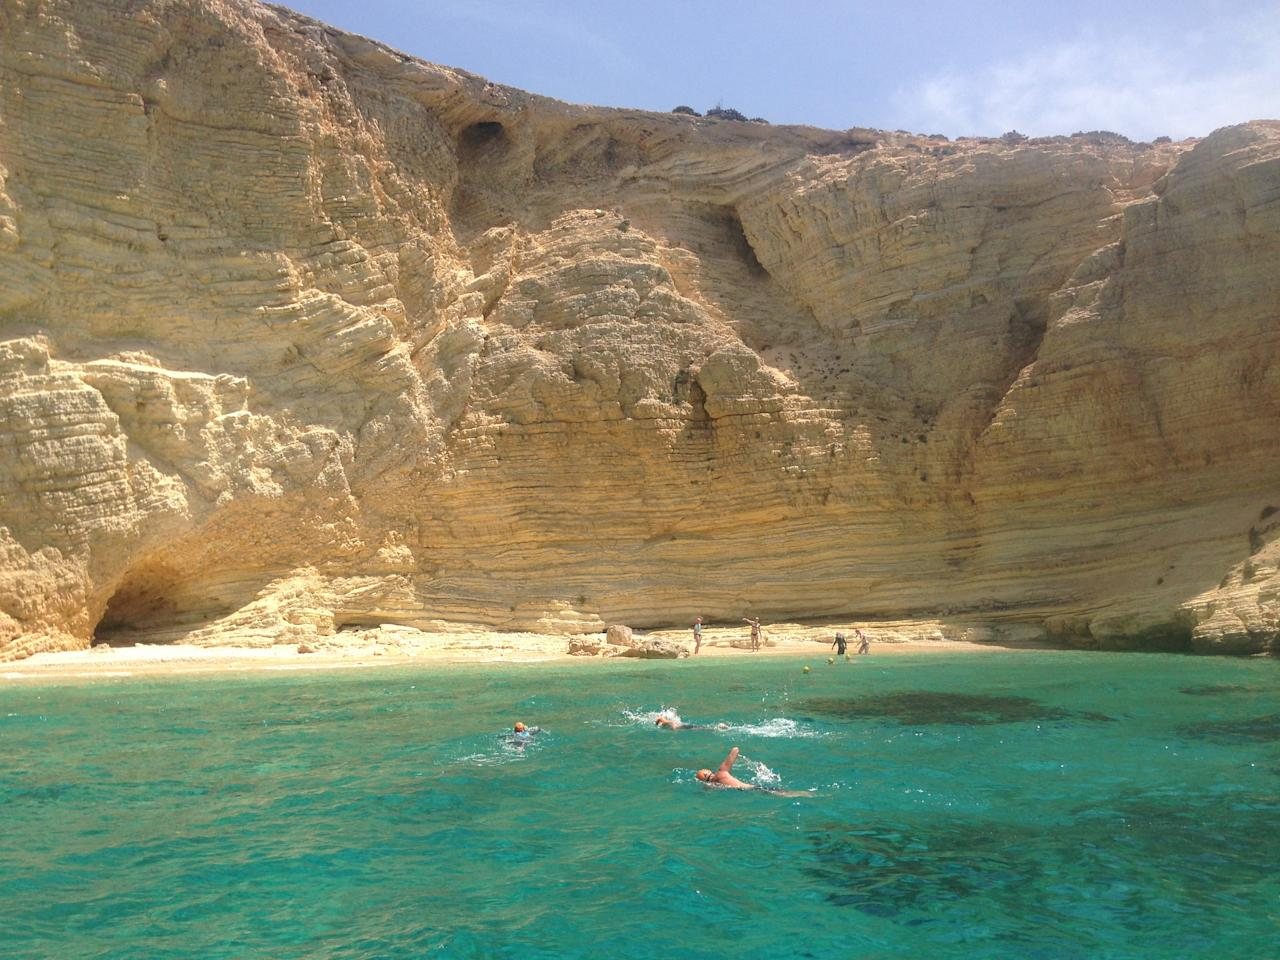 """<p>Dive into an island-hopping trip – where you swim between different isles. <a rel=""""nofollow"""" href=""""https://www.swimtrek.com/packages/swimming-holiday-greek-cyclades"""">SwimTrek</a> offer open-water swimming holidays in some incredible locations, including the Greek Cyclades, where you'll criss-cross your way between five different islands, splashing through tunnels and caves. Sailing and exploring islands on foot are also part of the trip. Seven nights B&B including most meals, swimming coaching and guiding costs from £980, departing September 16. Excludes flights.<br /><i>[Photo: SwimTrek]</i> </p>"""